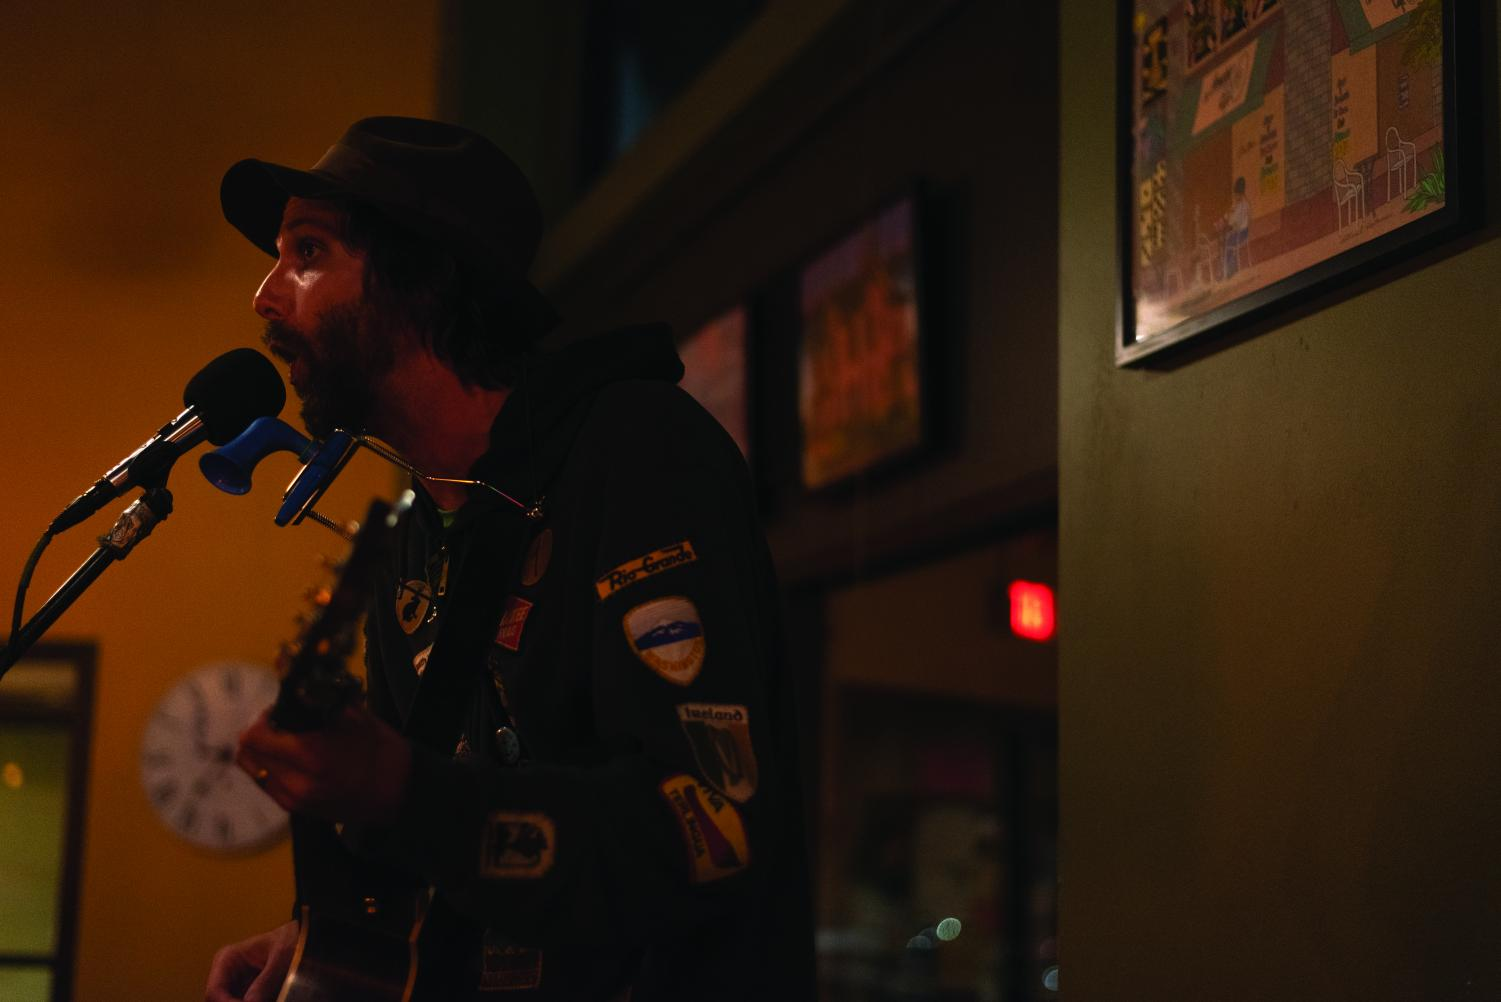 D.B. Rouse, a UW-Eau Claire alumna, plays at the Acoustic cafe Nov. 8. Rouse said he finds himself playing at the Acoustic Cafe at least once a year.